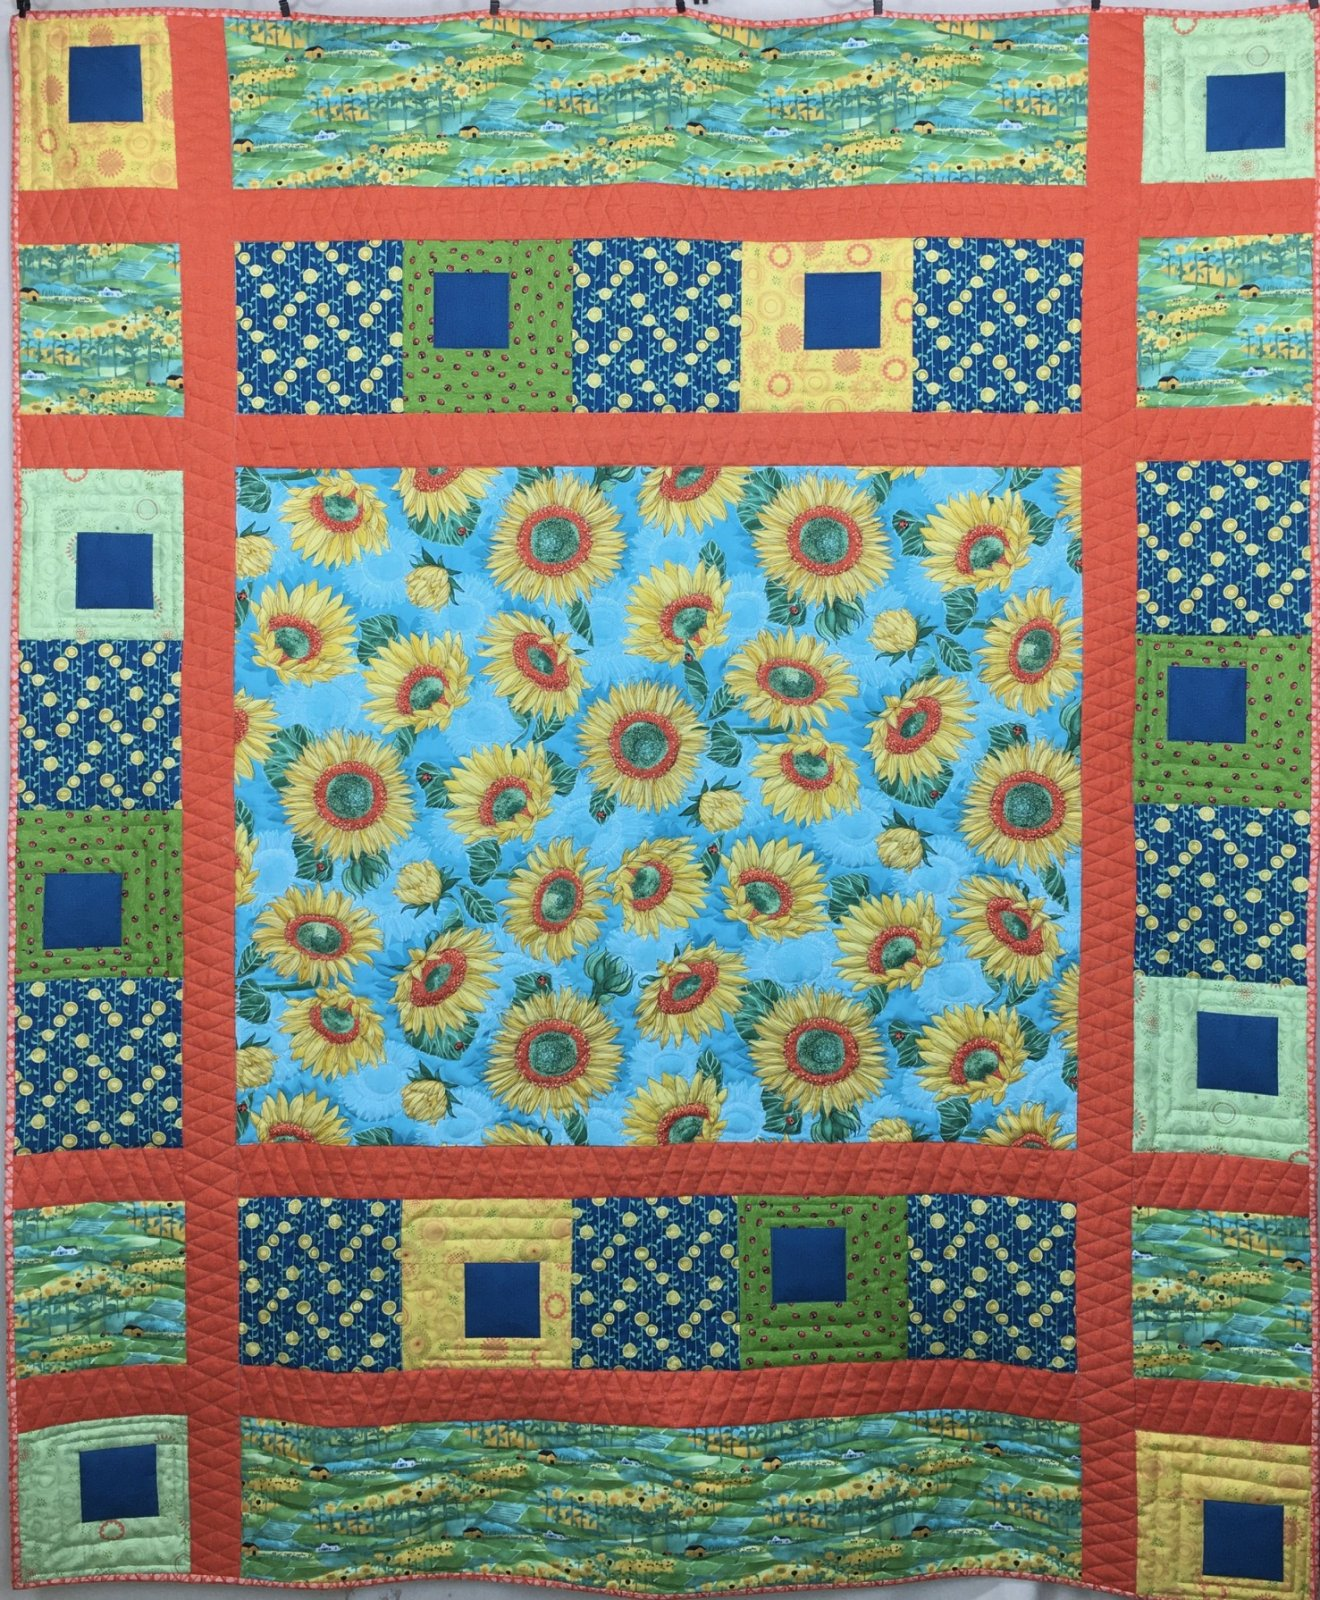 Out West Quilt Kit with Solana